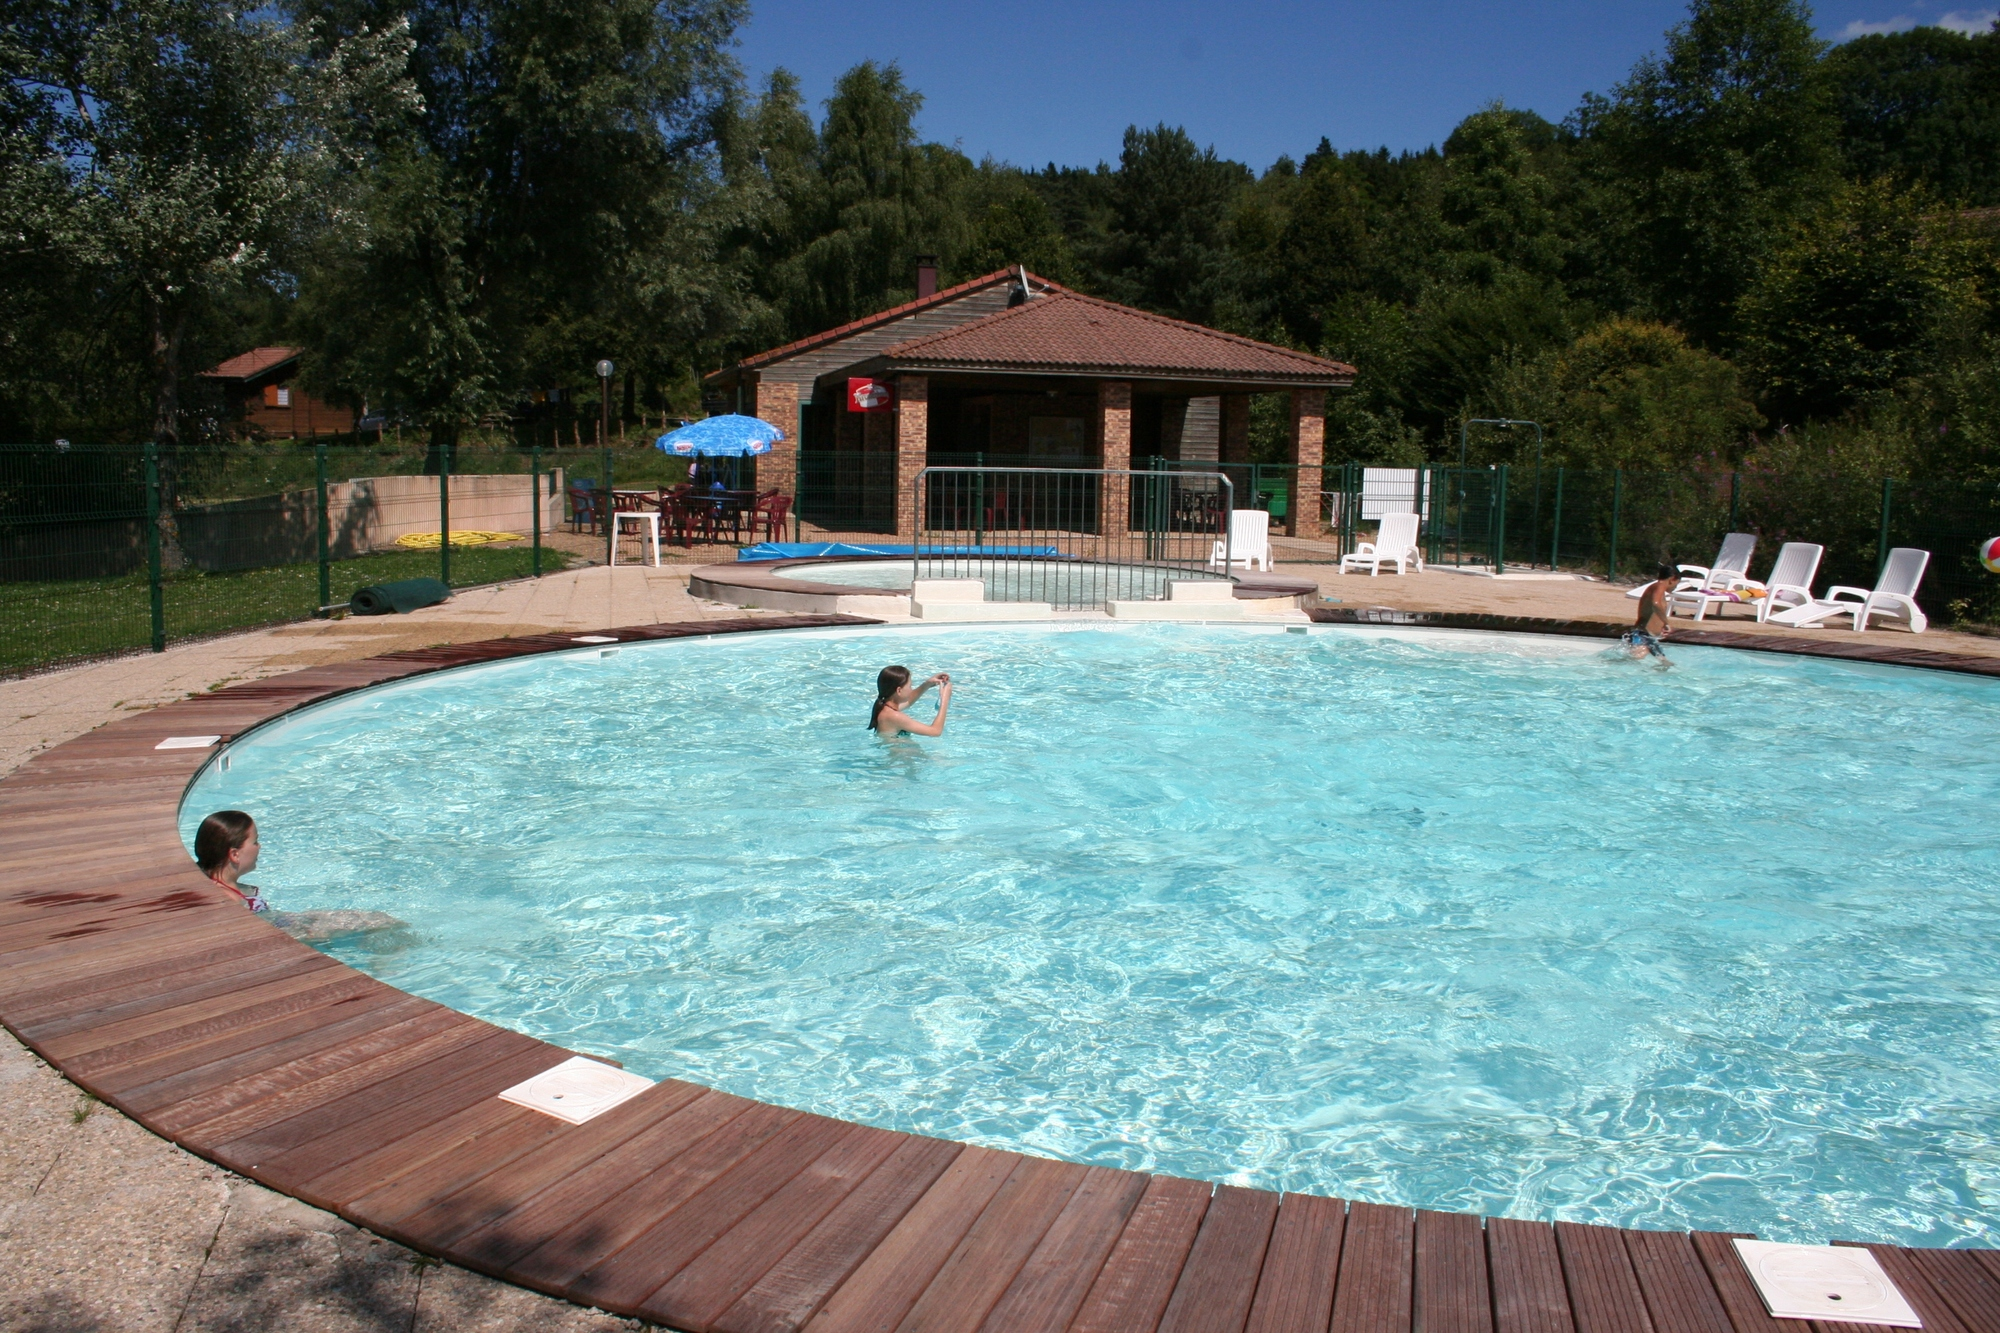 Camping Le Saint-Eloy